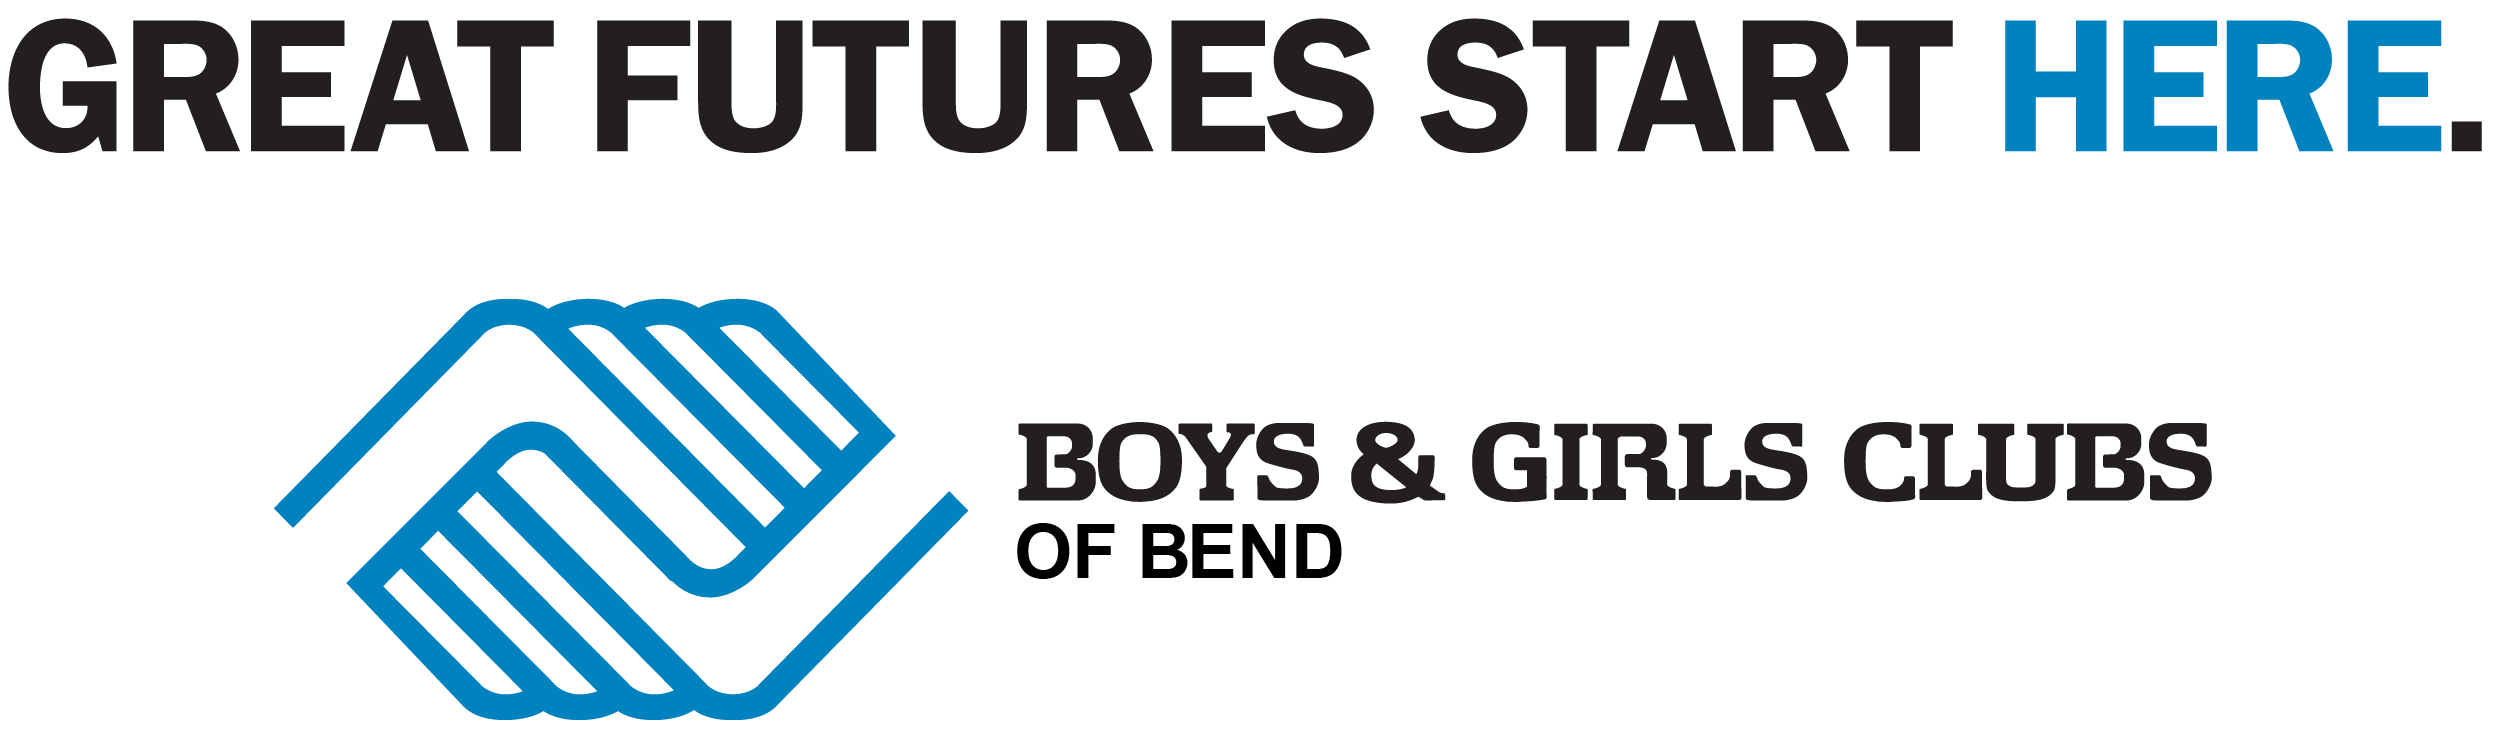 Boys & Girls Club of Bend